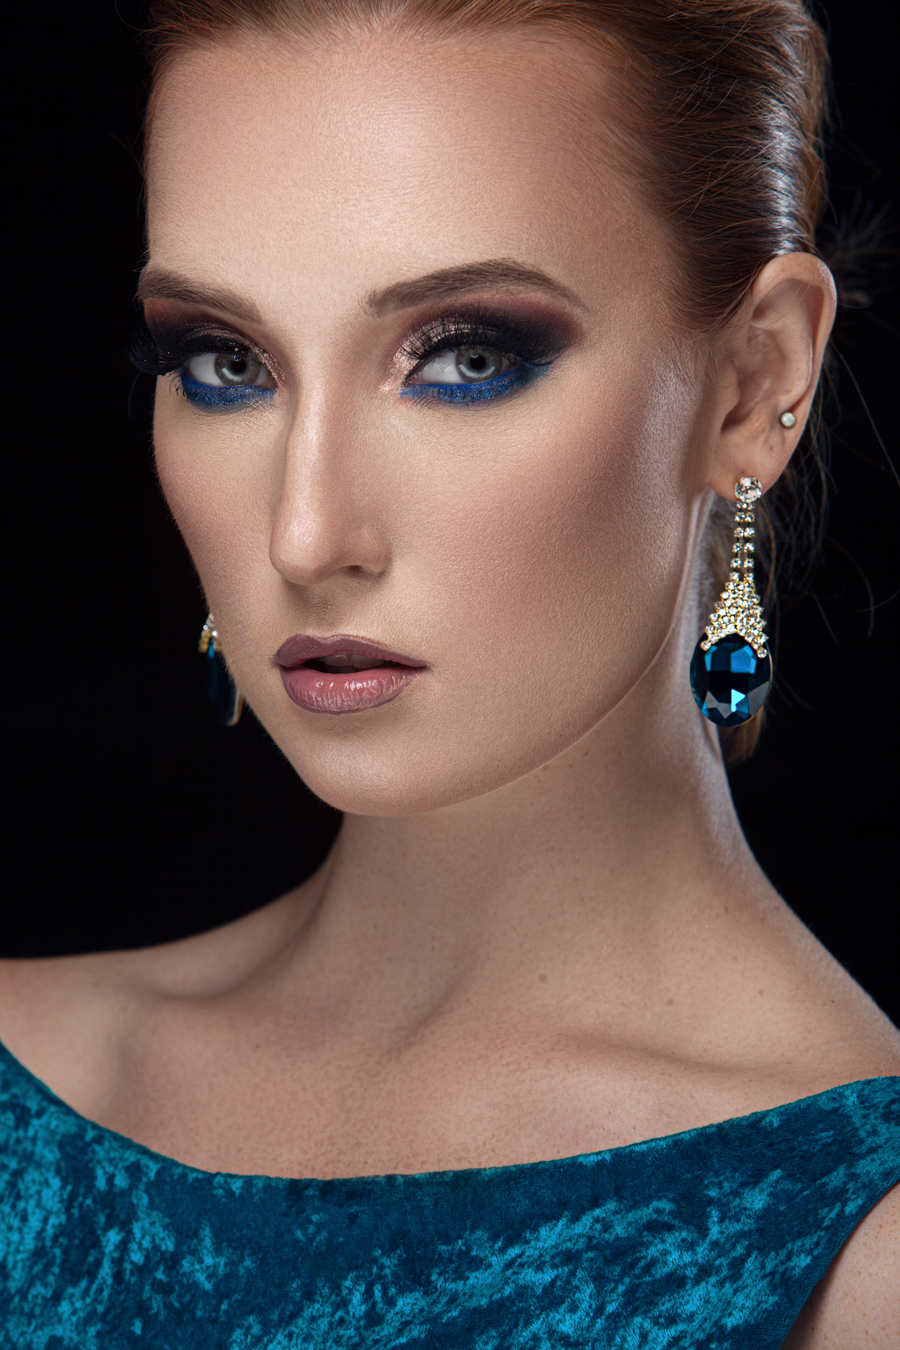 Blue Glamour Retouch / Post processing by Claire Rees Design / Uploaded 17th September 2019 @ 02:08 PM